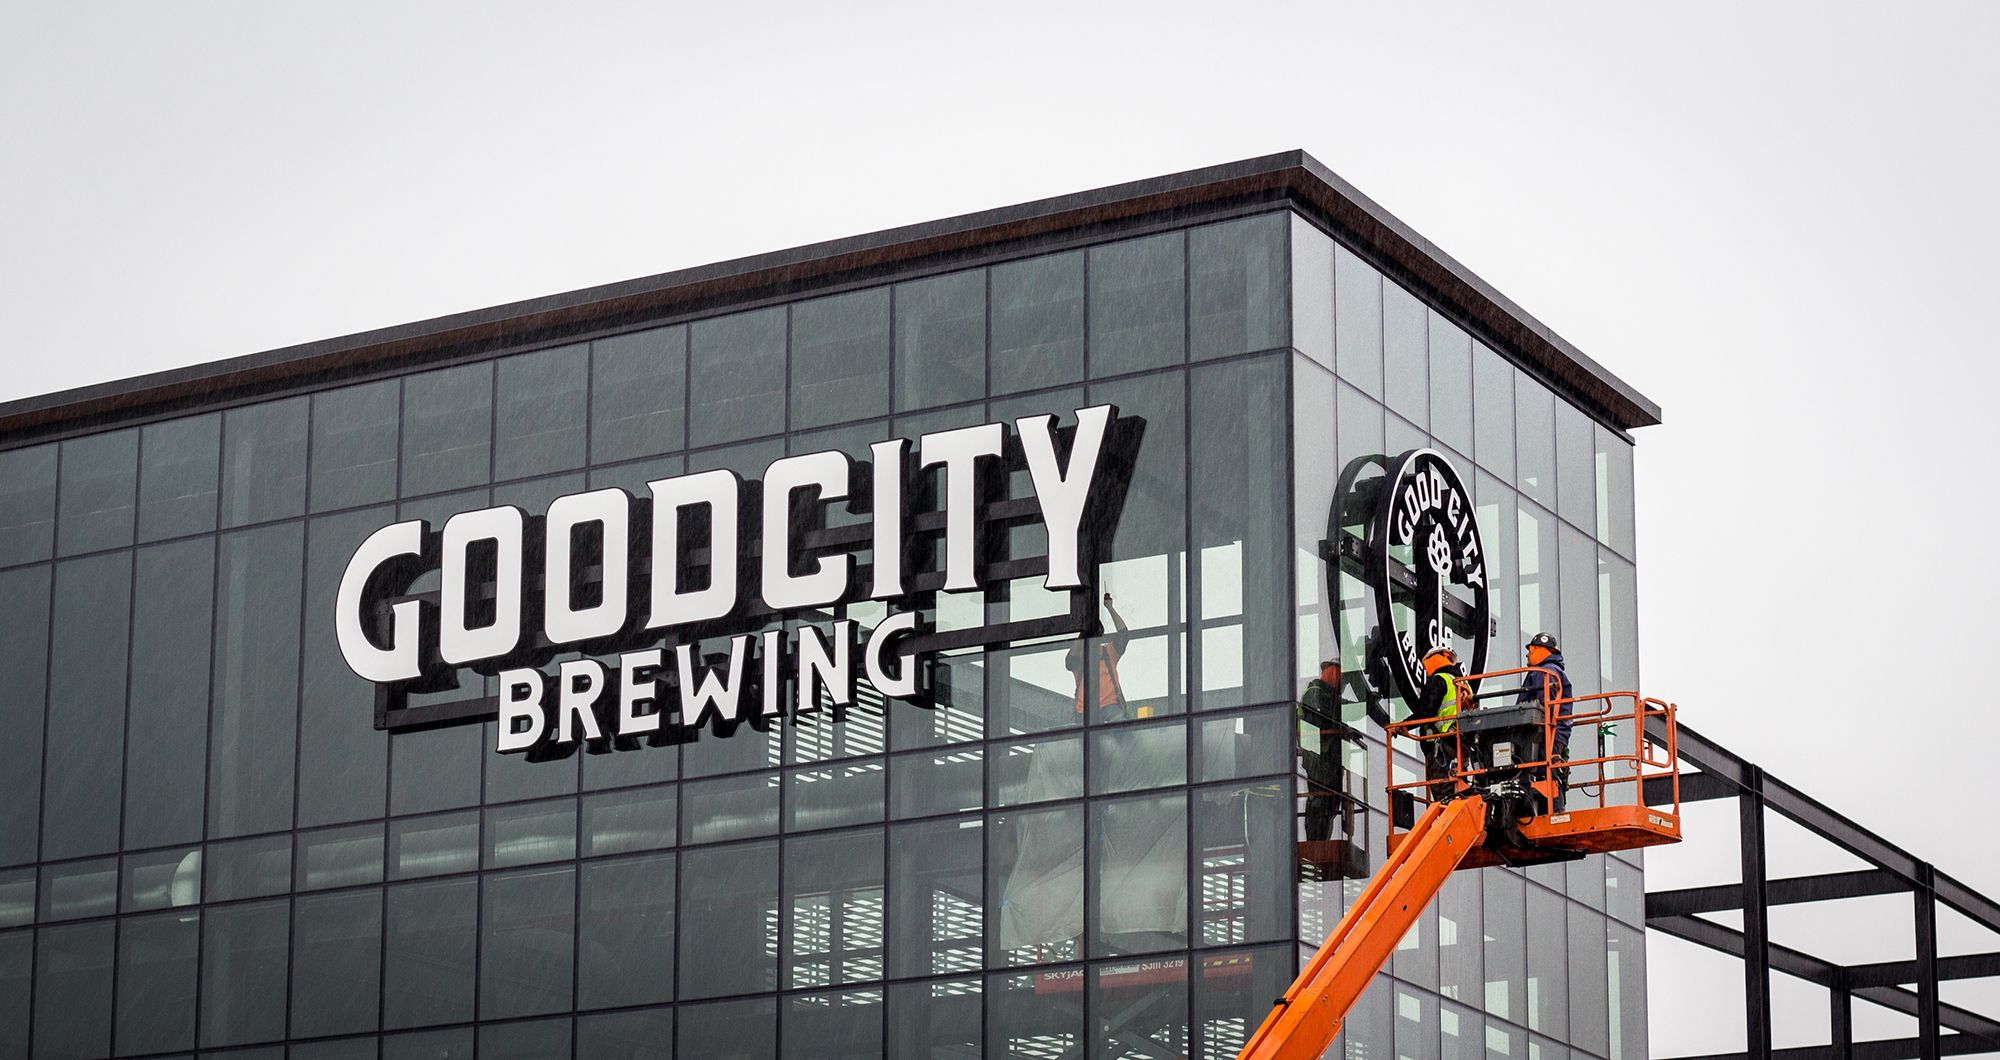 super popular ac33c 8b71d Good City Brewing Announces Opening Date for Brewery and ...